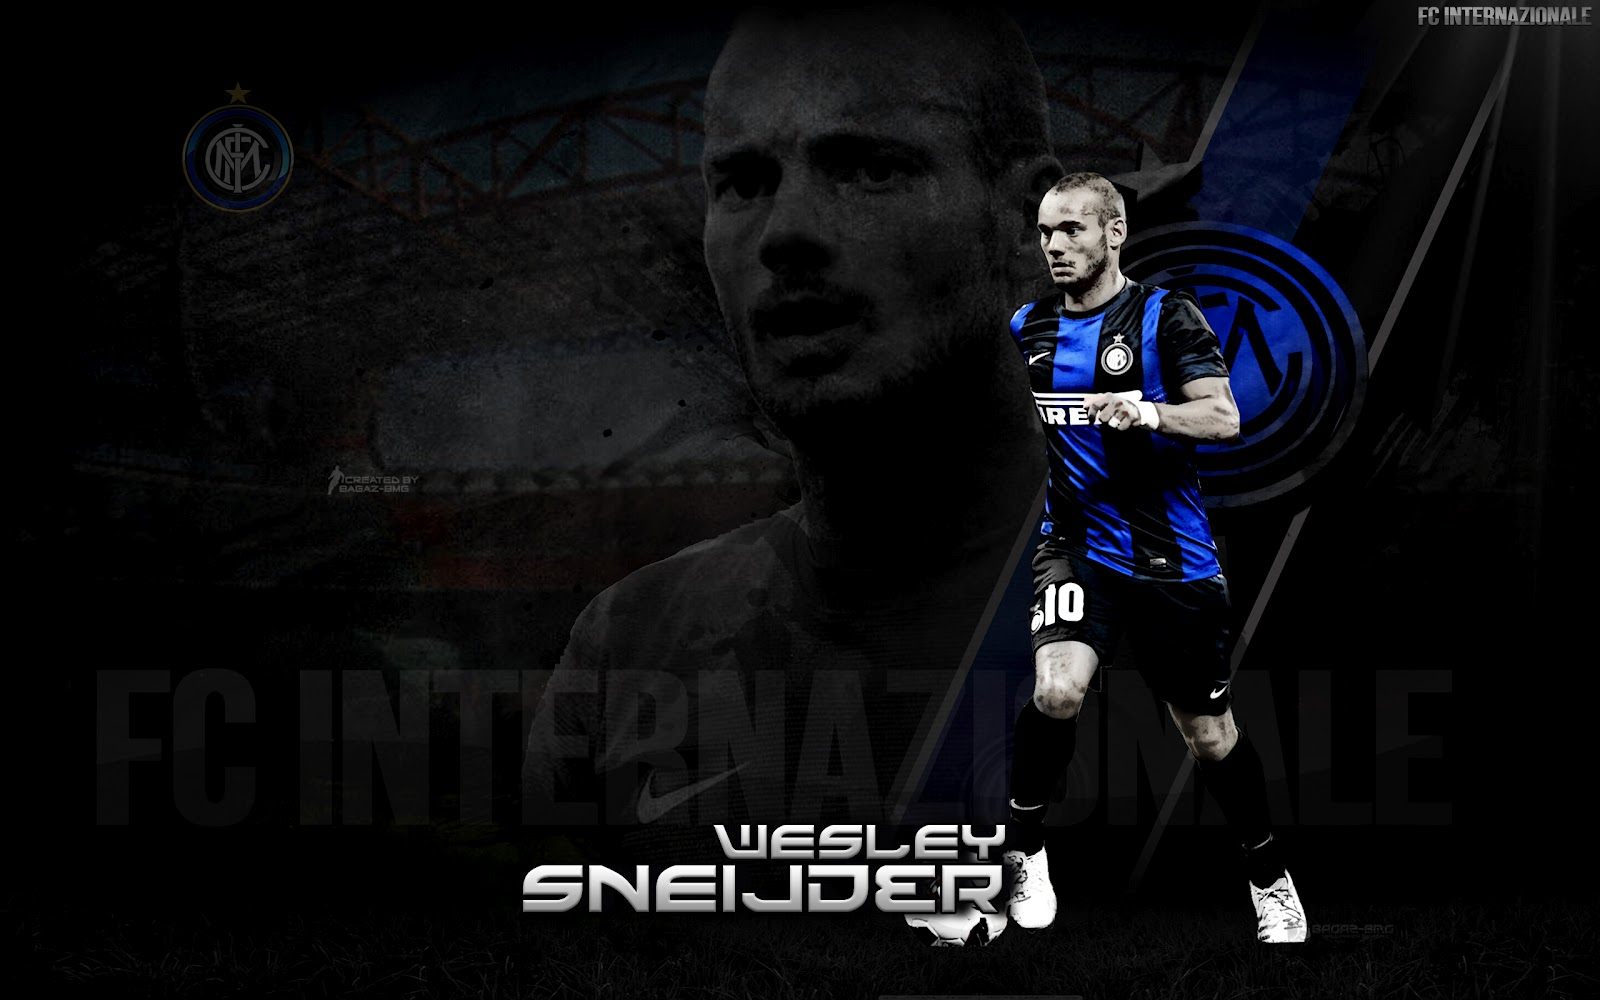 inter milan wallpaper 2012 - photo #46